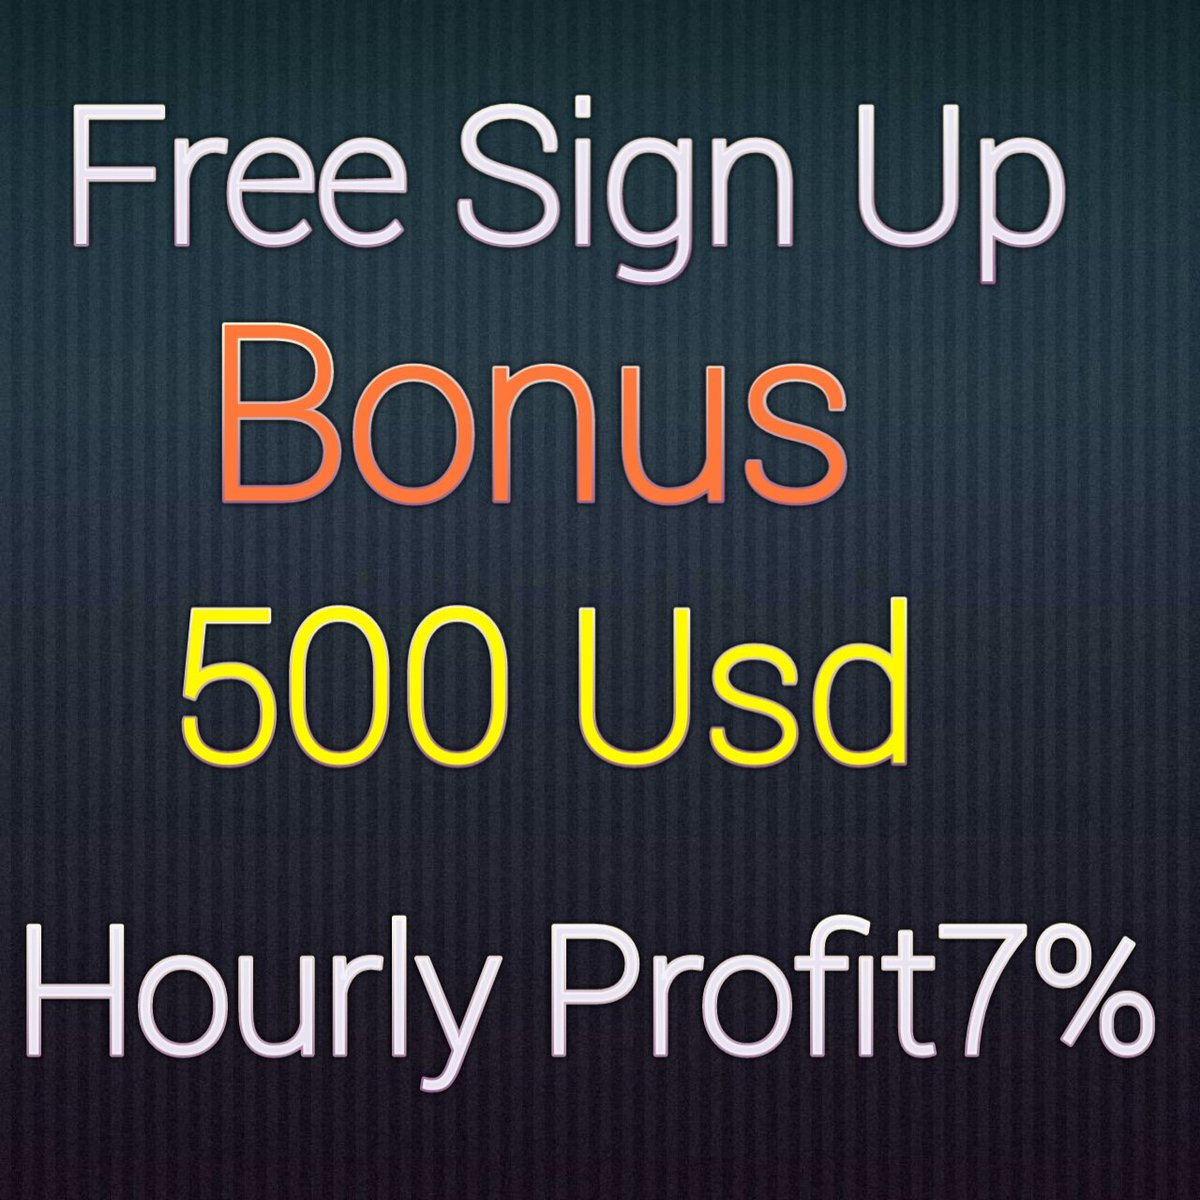 Bonus jump 10 USD to 500 USD😘😘😘😘😘  https://t.co/SN9kFDB3Os https://t.co/Xf2aZJb2To